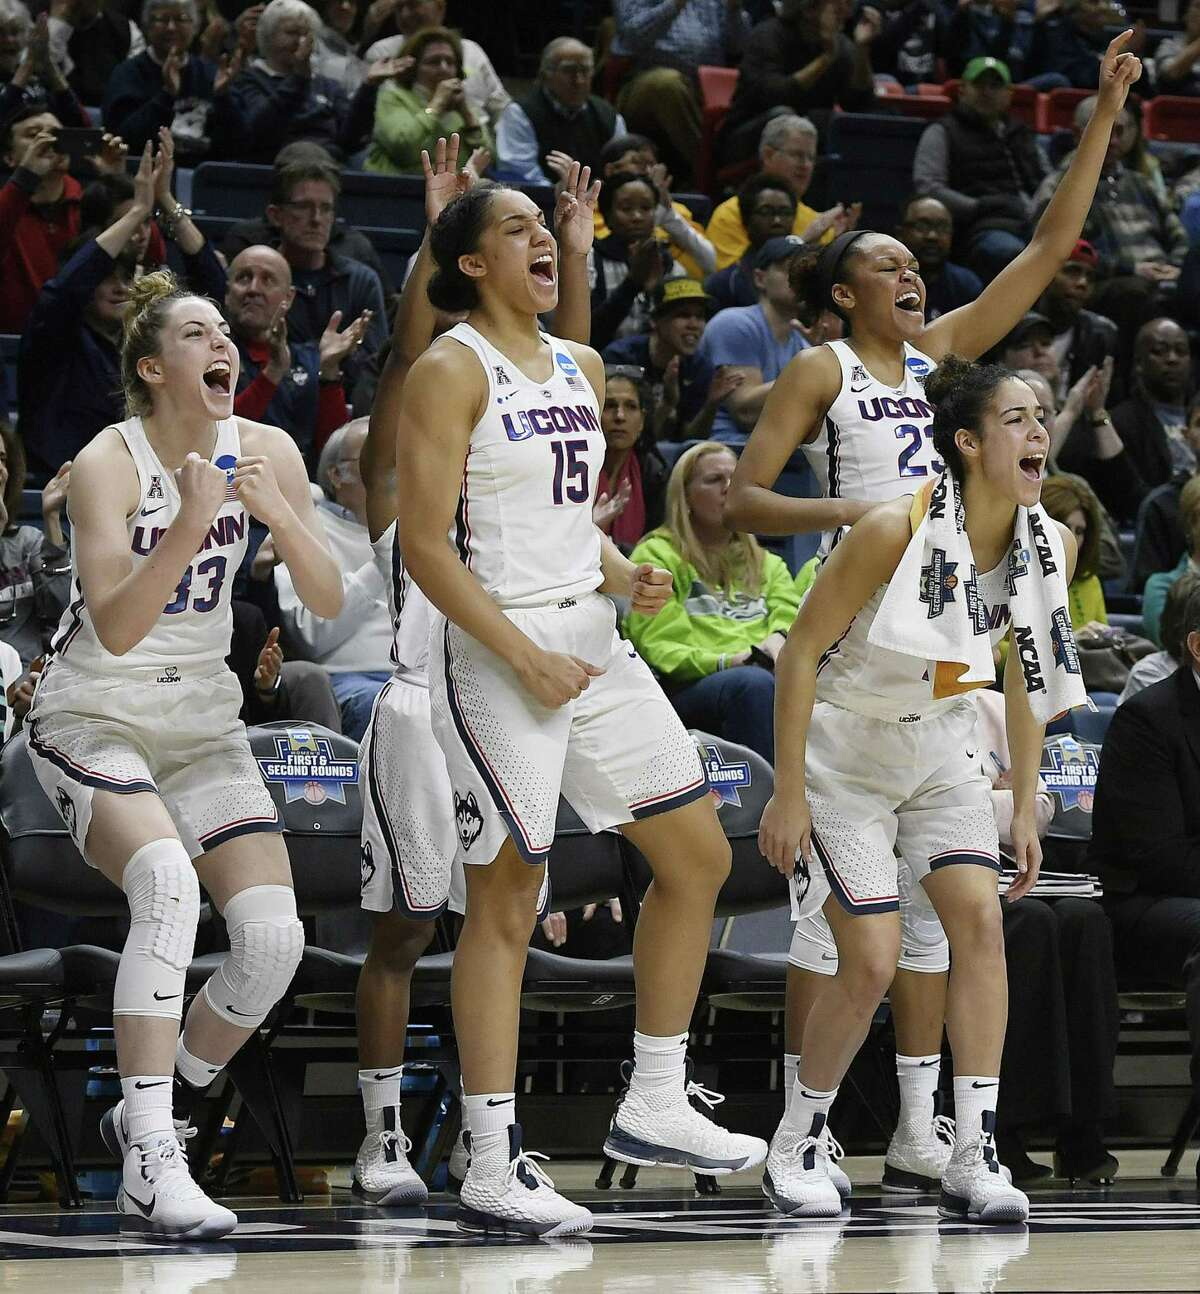 UConn will take on Quinnipiac in the second round of the NCAA tournament on Monday.